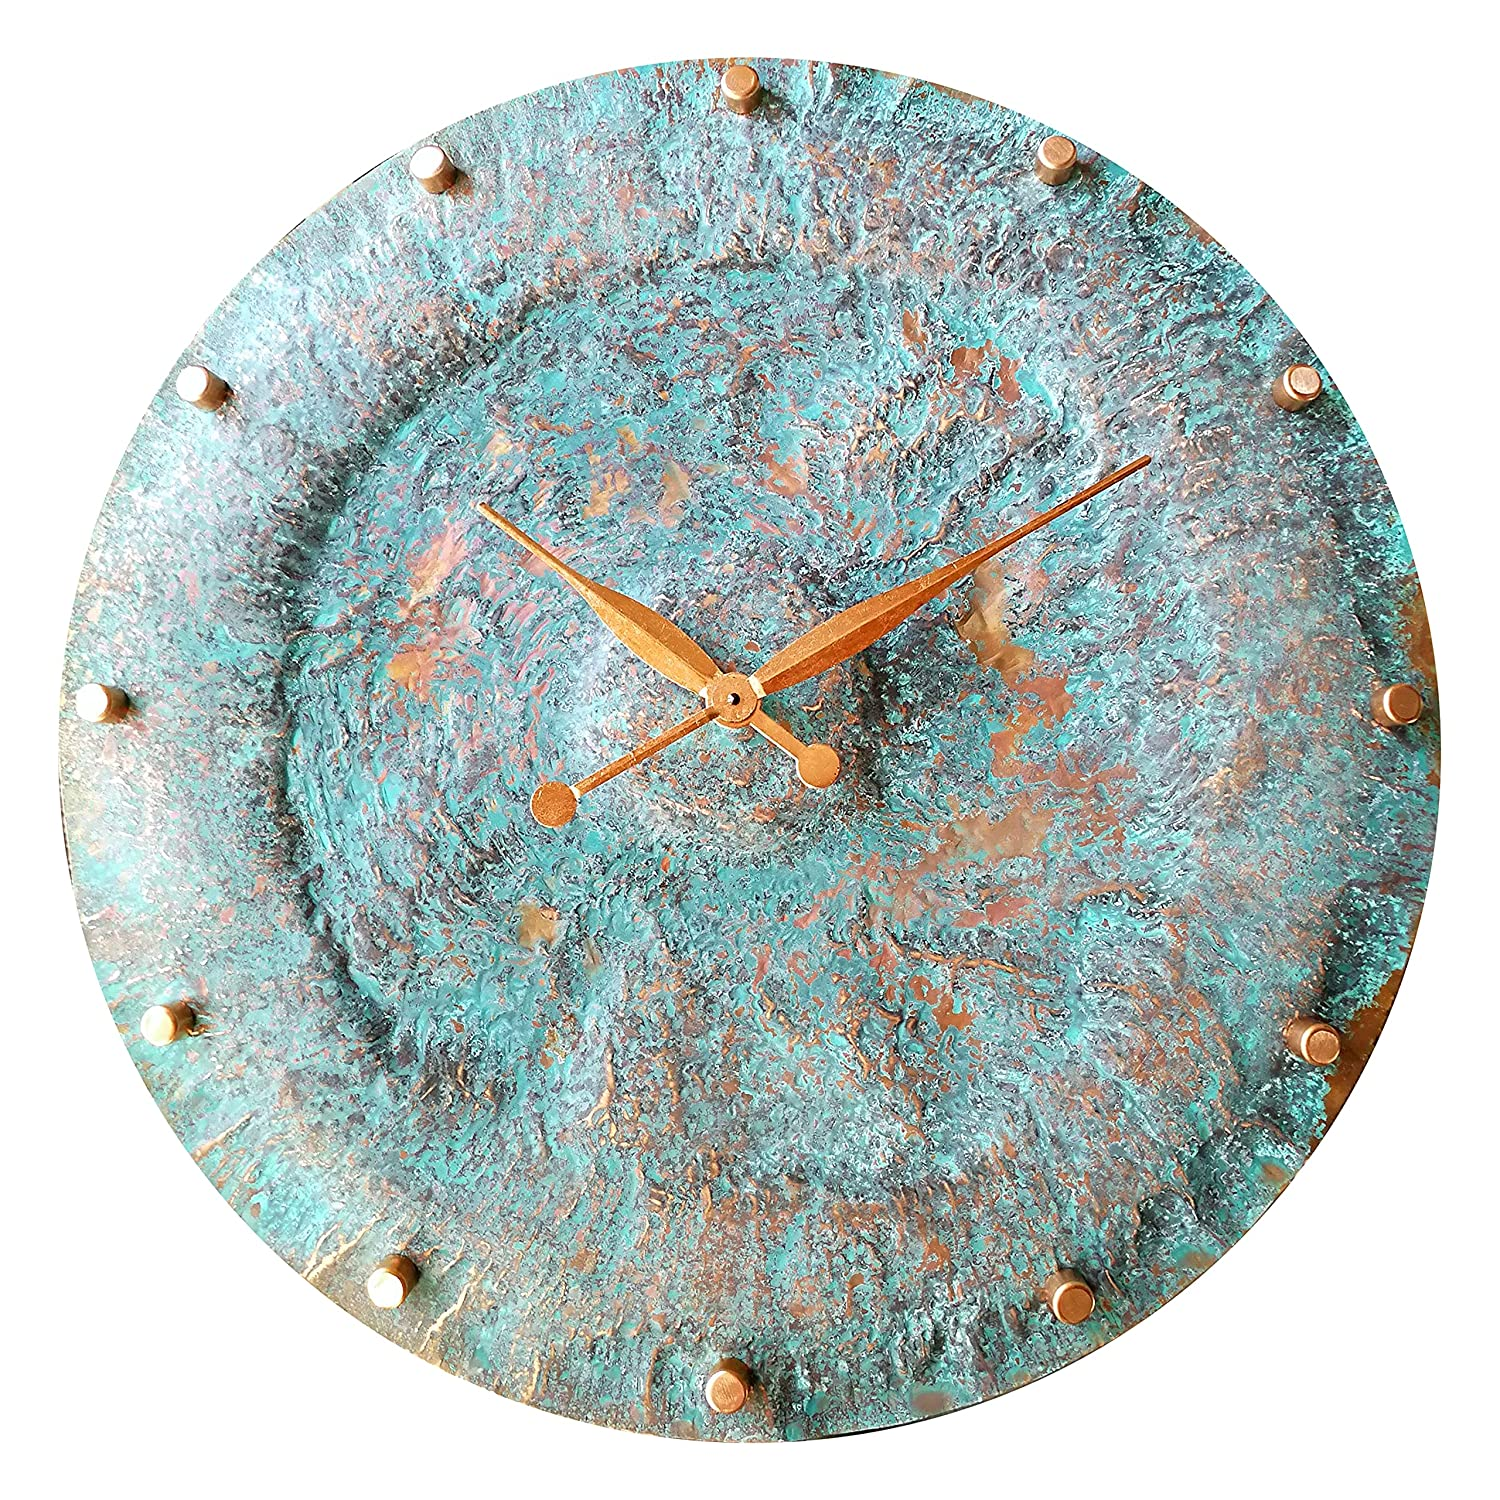 30-inch Turquoise Copper Wall Sale Clock - Anniversary Sil 7th Gift supreme